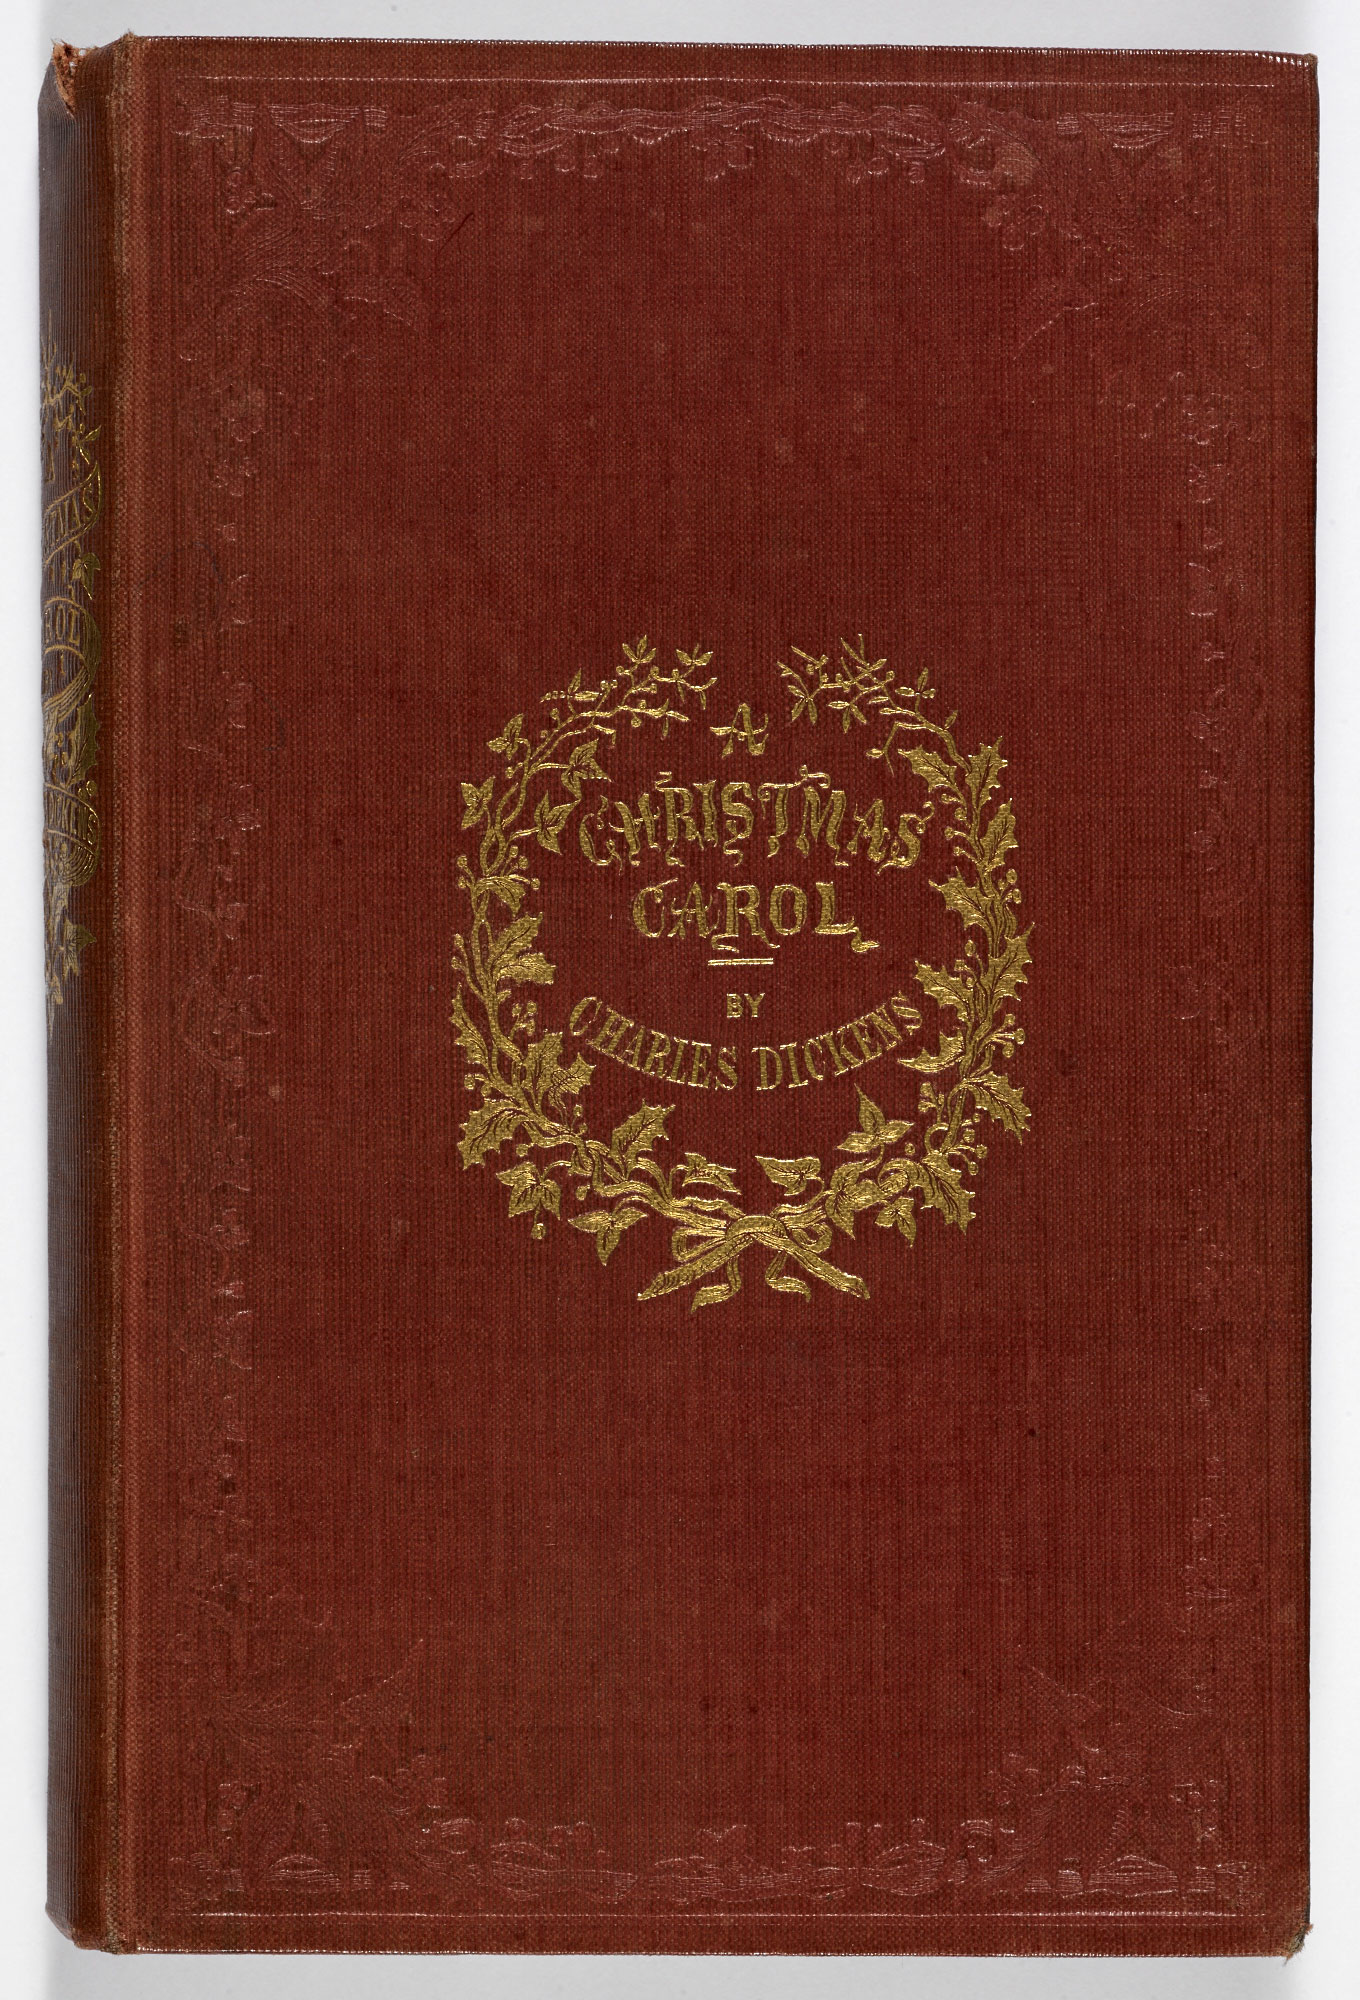 Who Wrote A Christmas Carol.First Edition Of A Christmas Carol The British Library